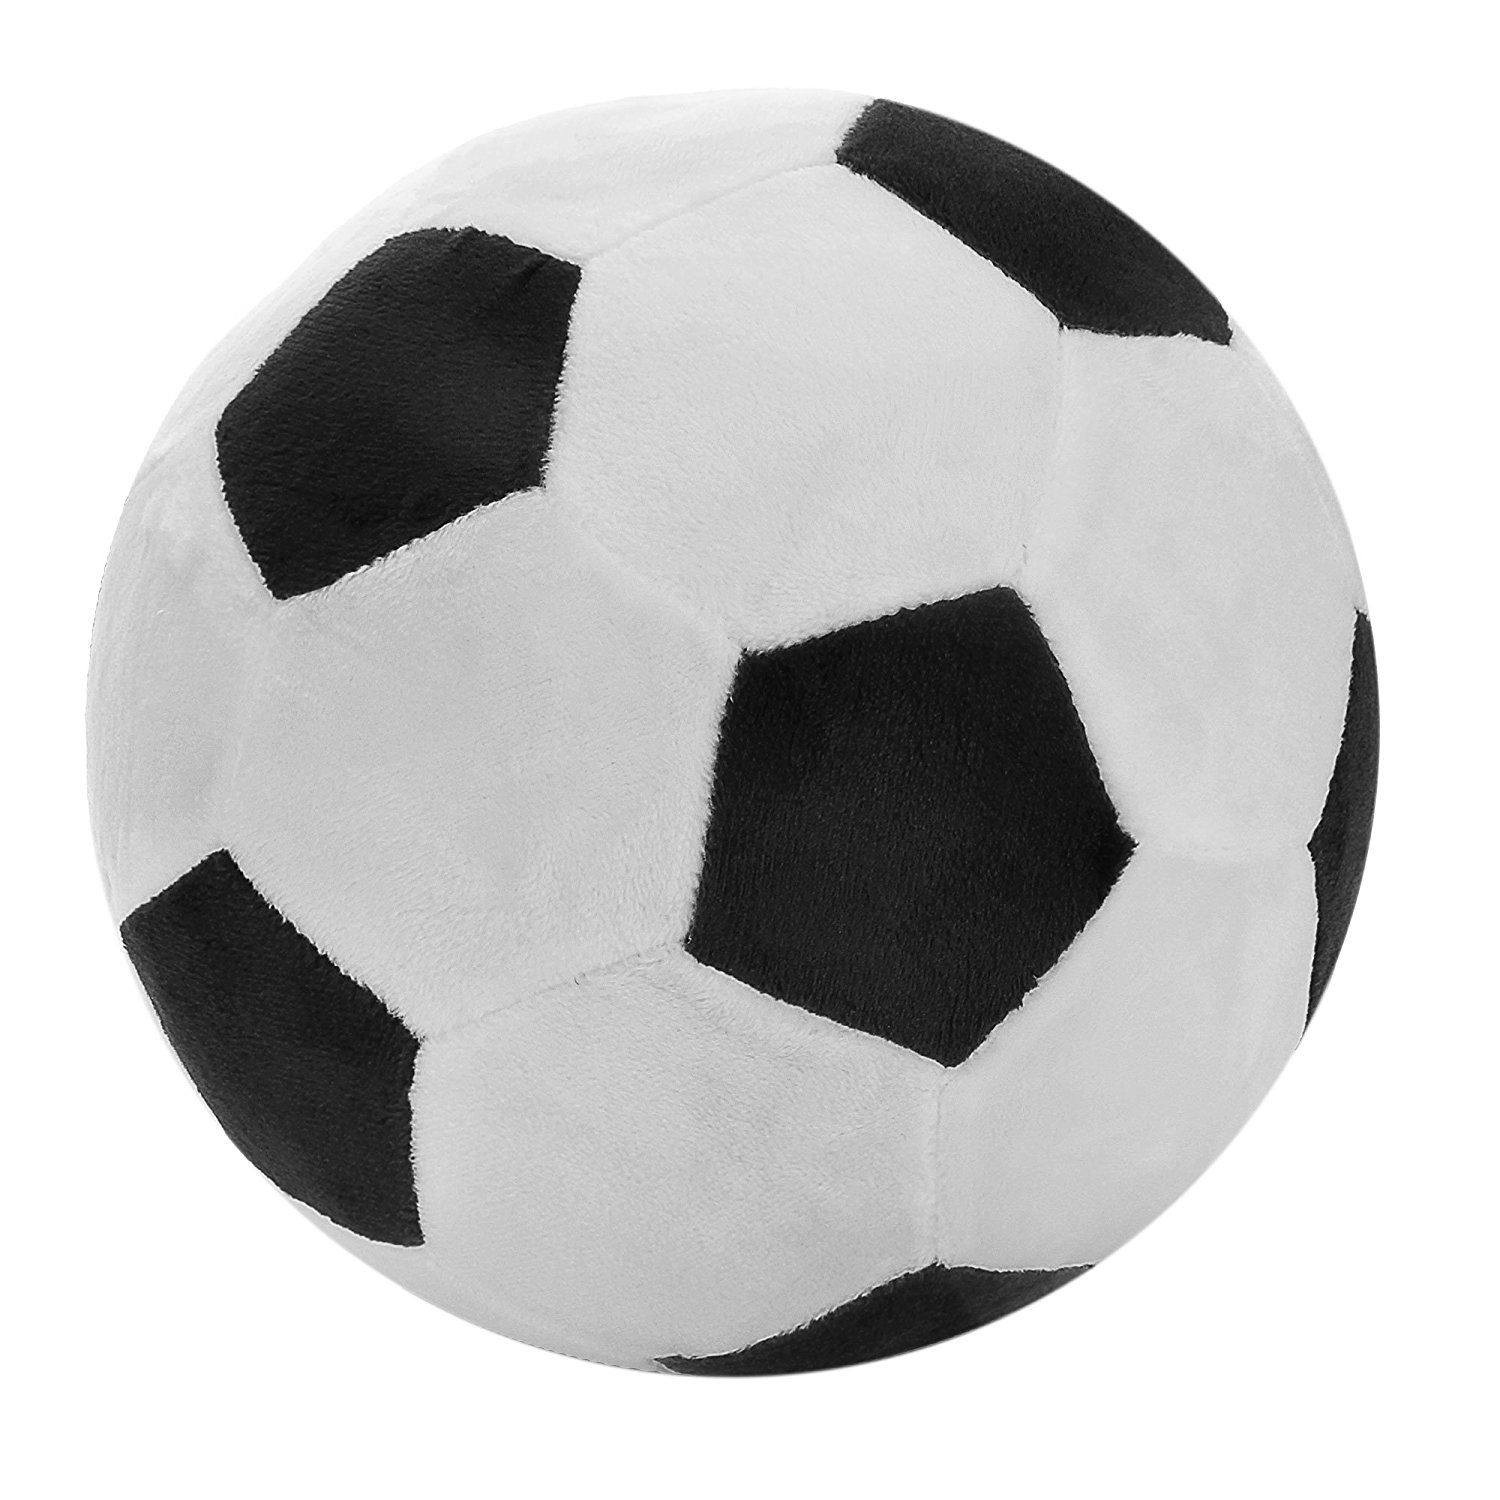 Soccer Sports Ball Throw Pillow Stuffed Soft Plush font b Toy b font For Toddler Baby